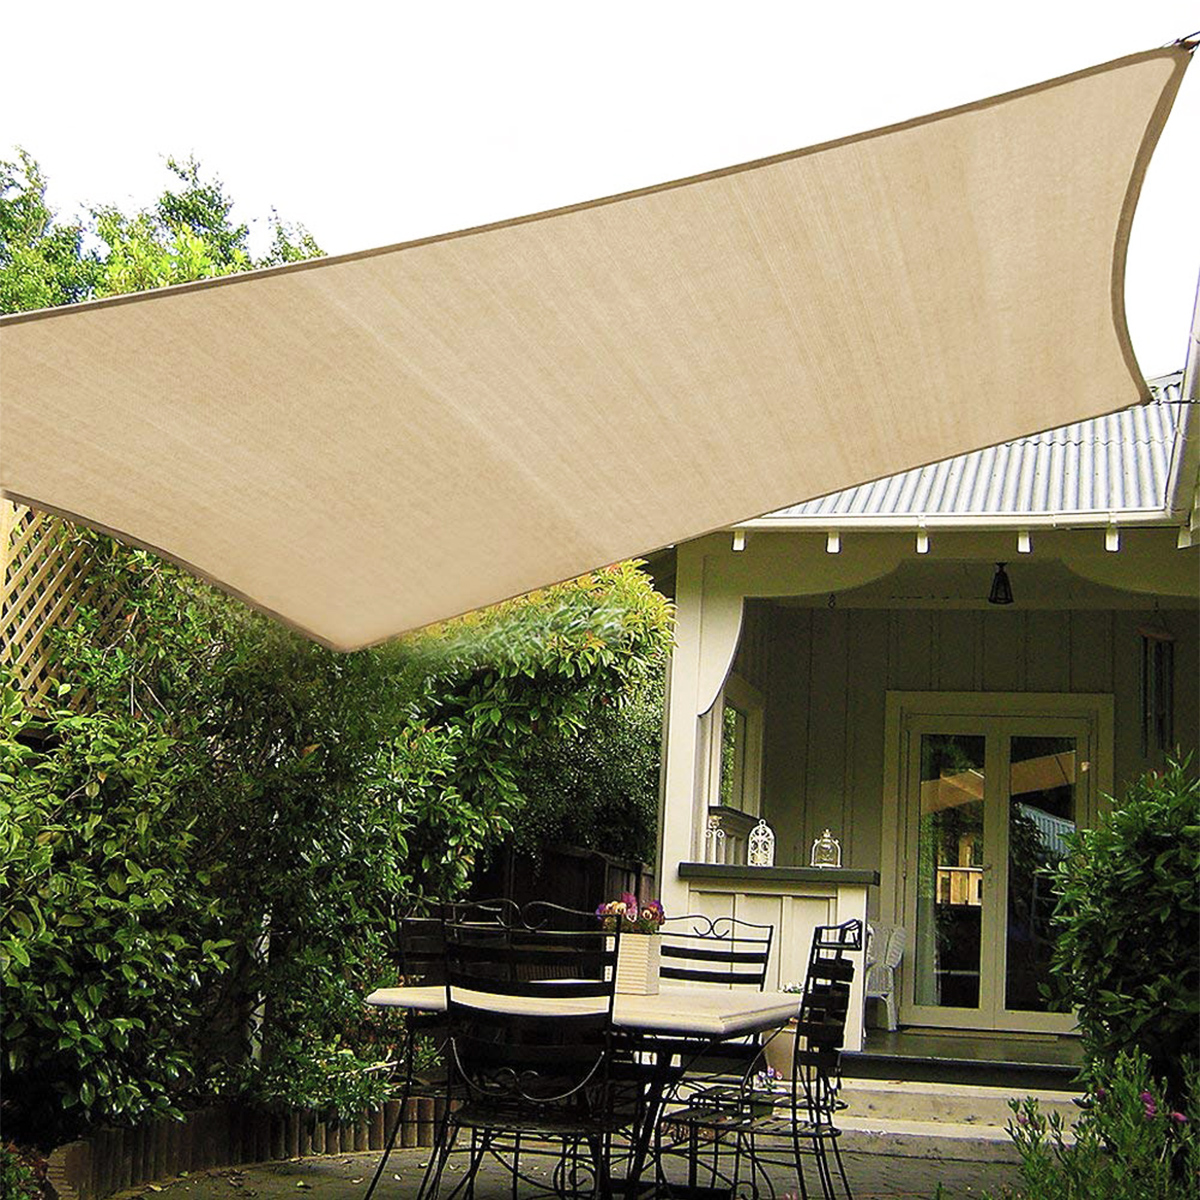 6 5 10ft Rectangle Waterproof Shade Sail Uv Block Fabric Canopy For Outdoor Patio Garden Swimming Pool Sun Shade Sail Patio Furniture Accessories Patio Lawn Garden